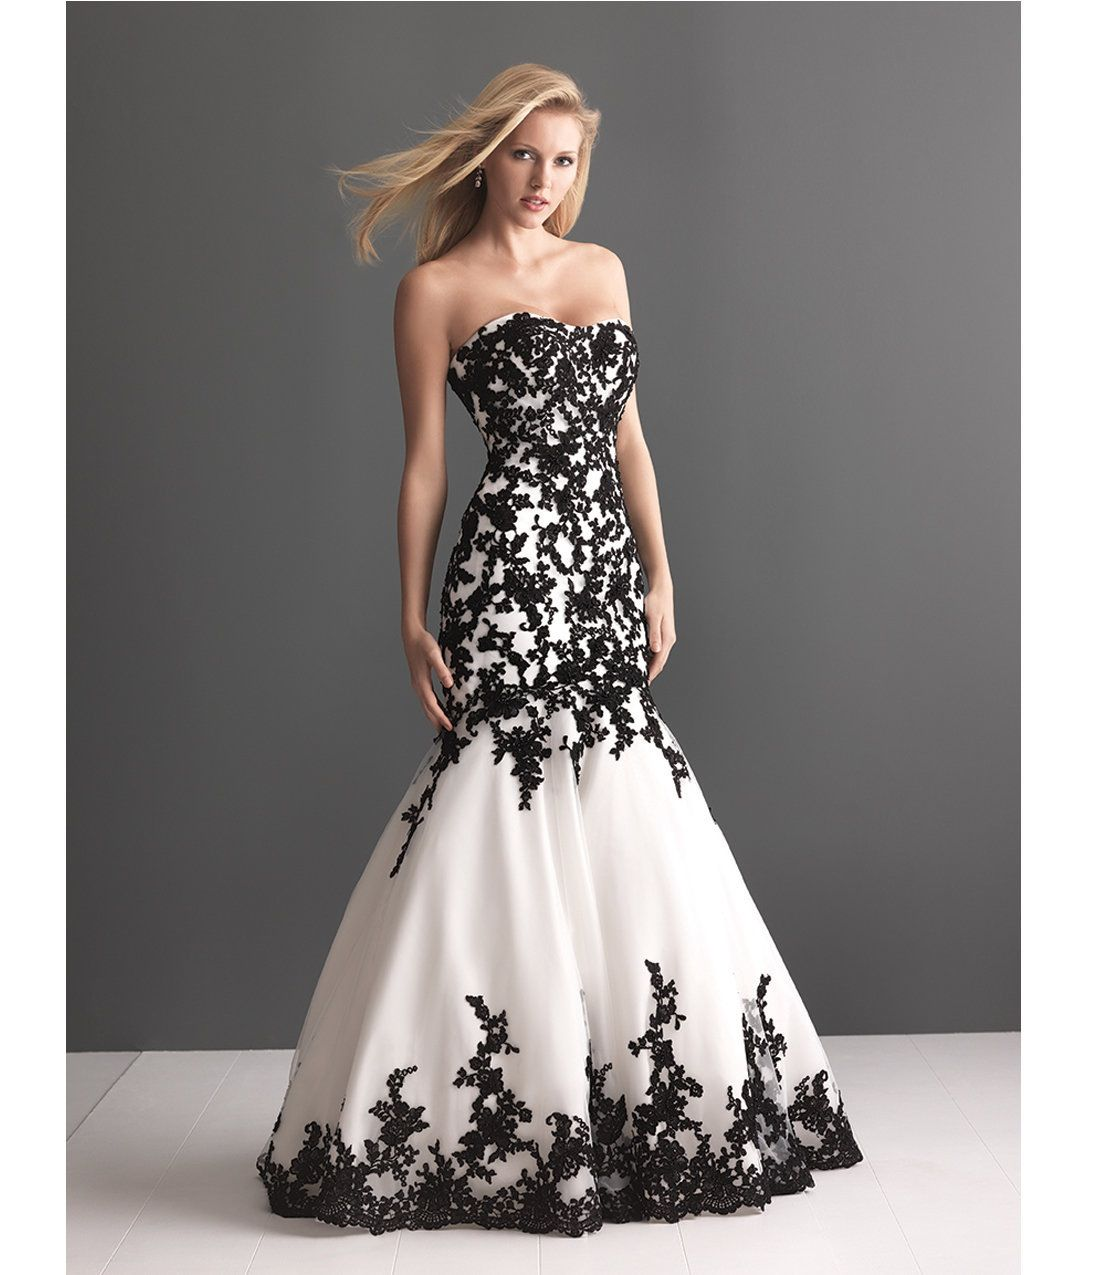 Black and white lace dresses pinterest white lace and black